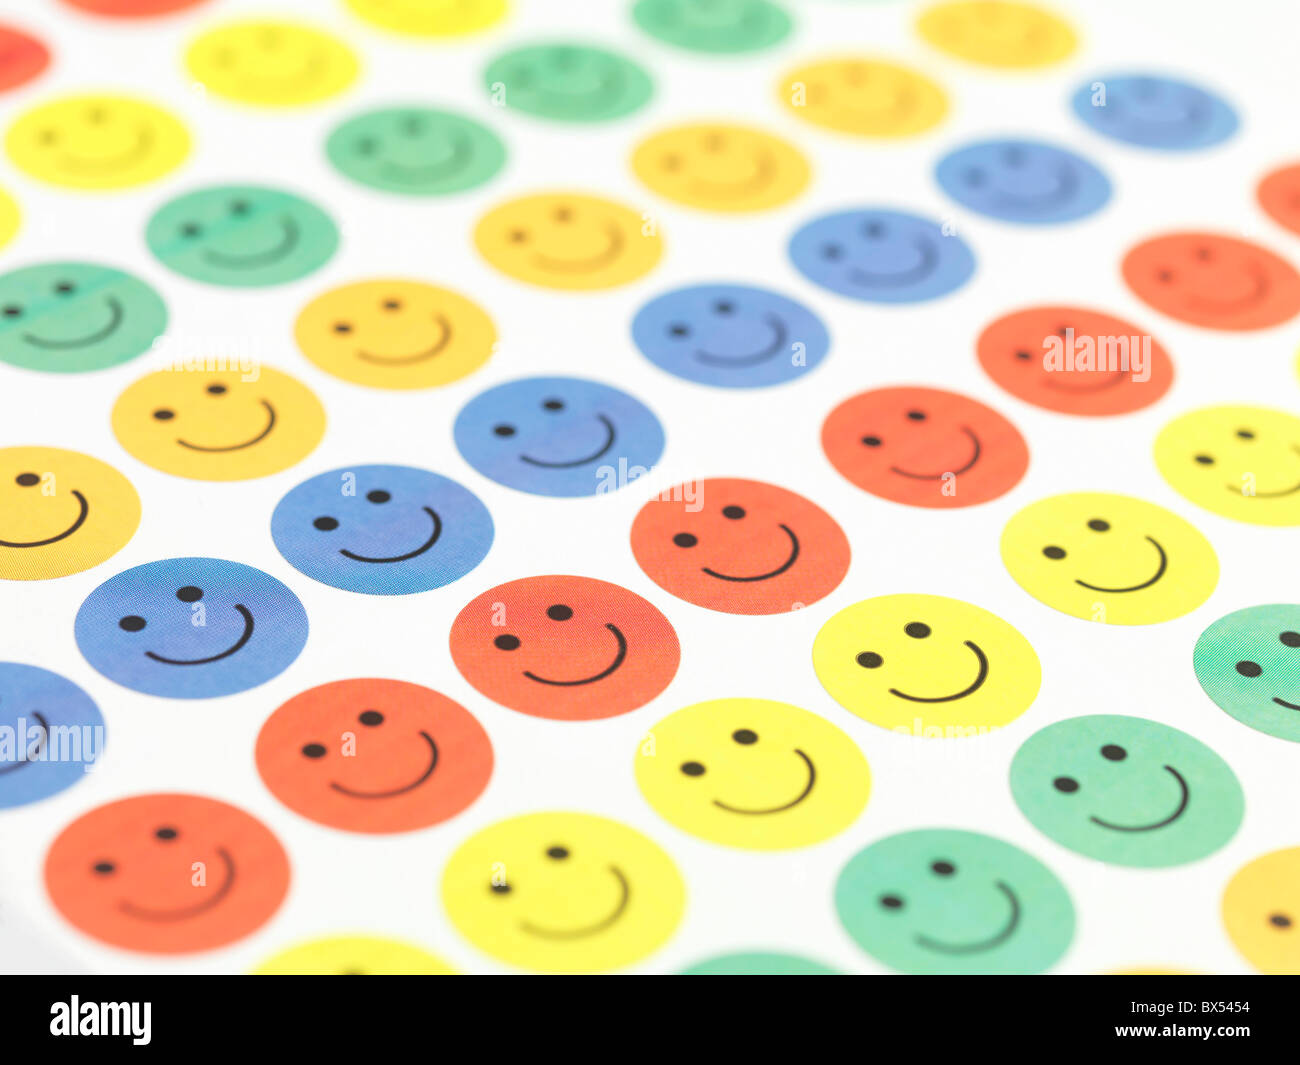 Smiley face stickers - Stock Image